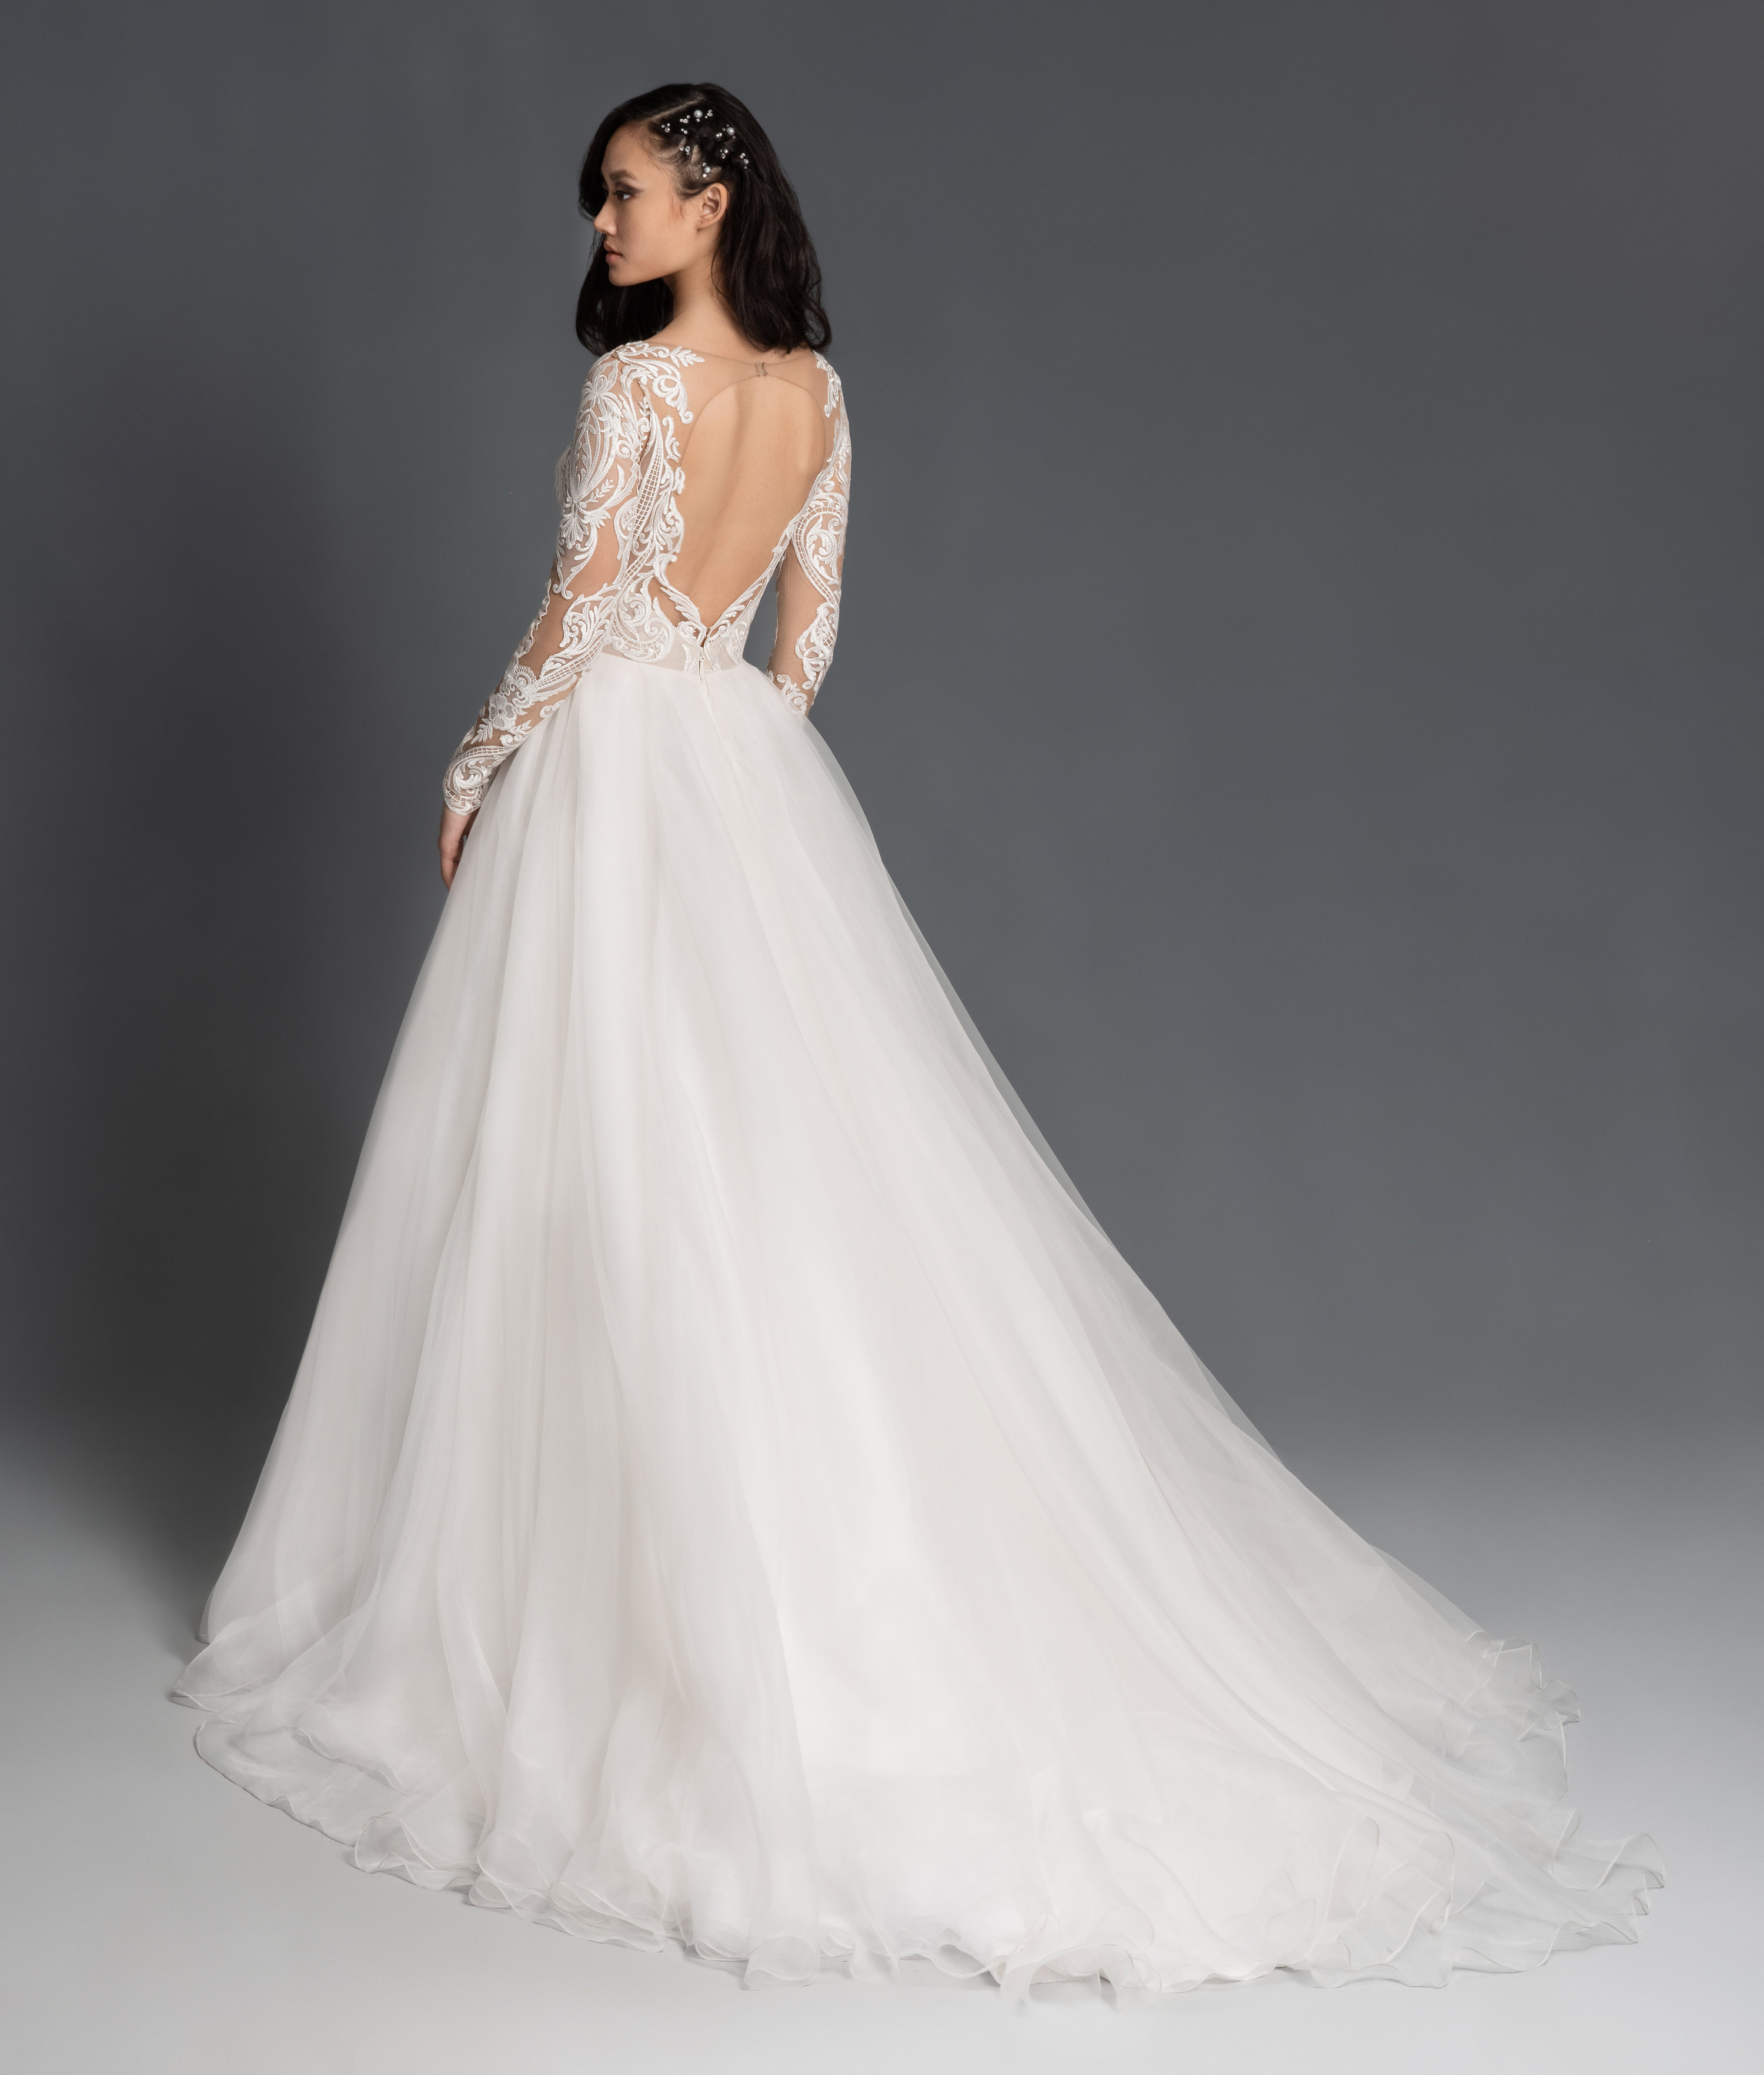 Bridal Gowns and Wedding Dresses by JLM Couture   Style 20 Mulan